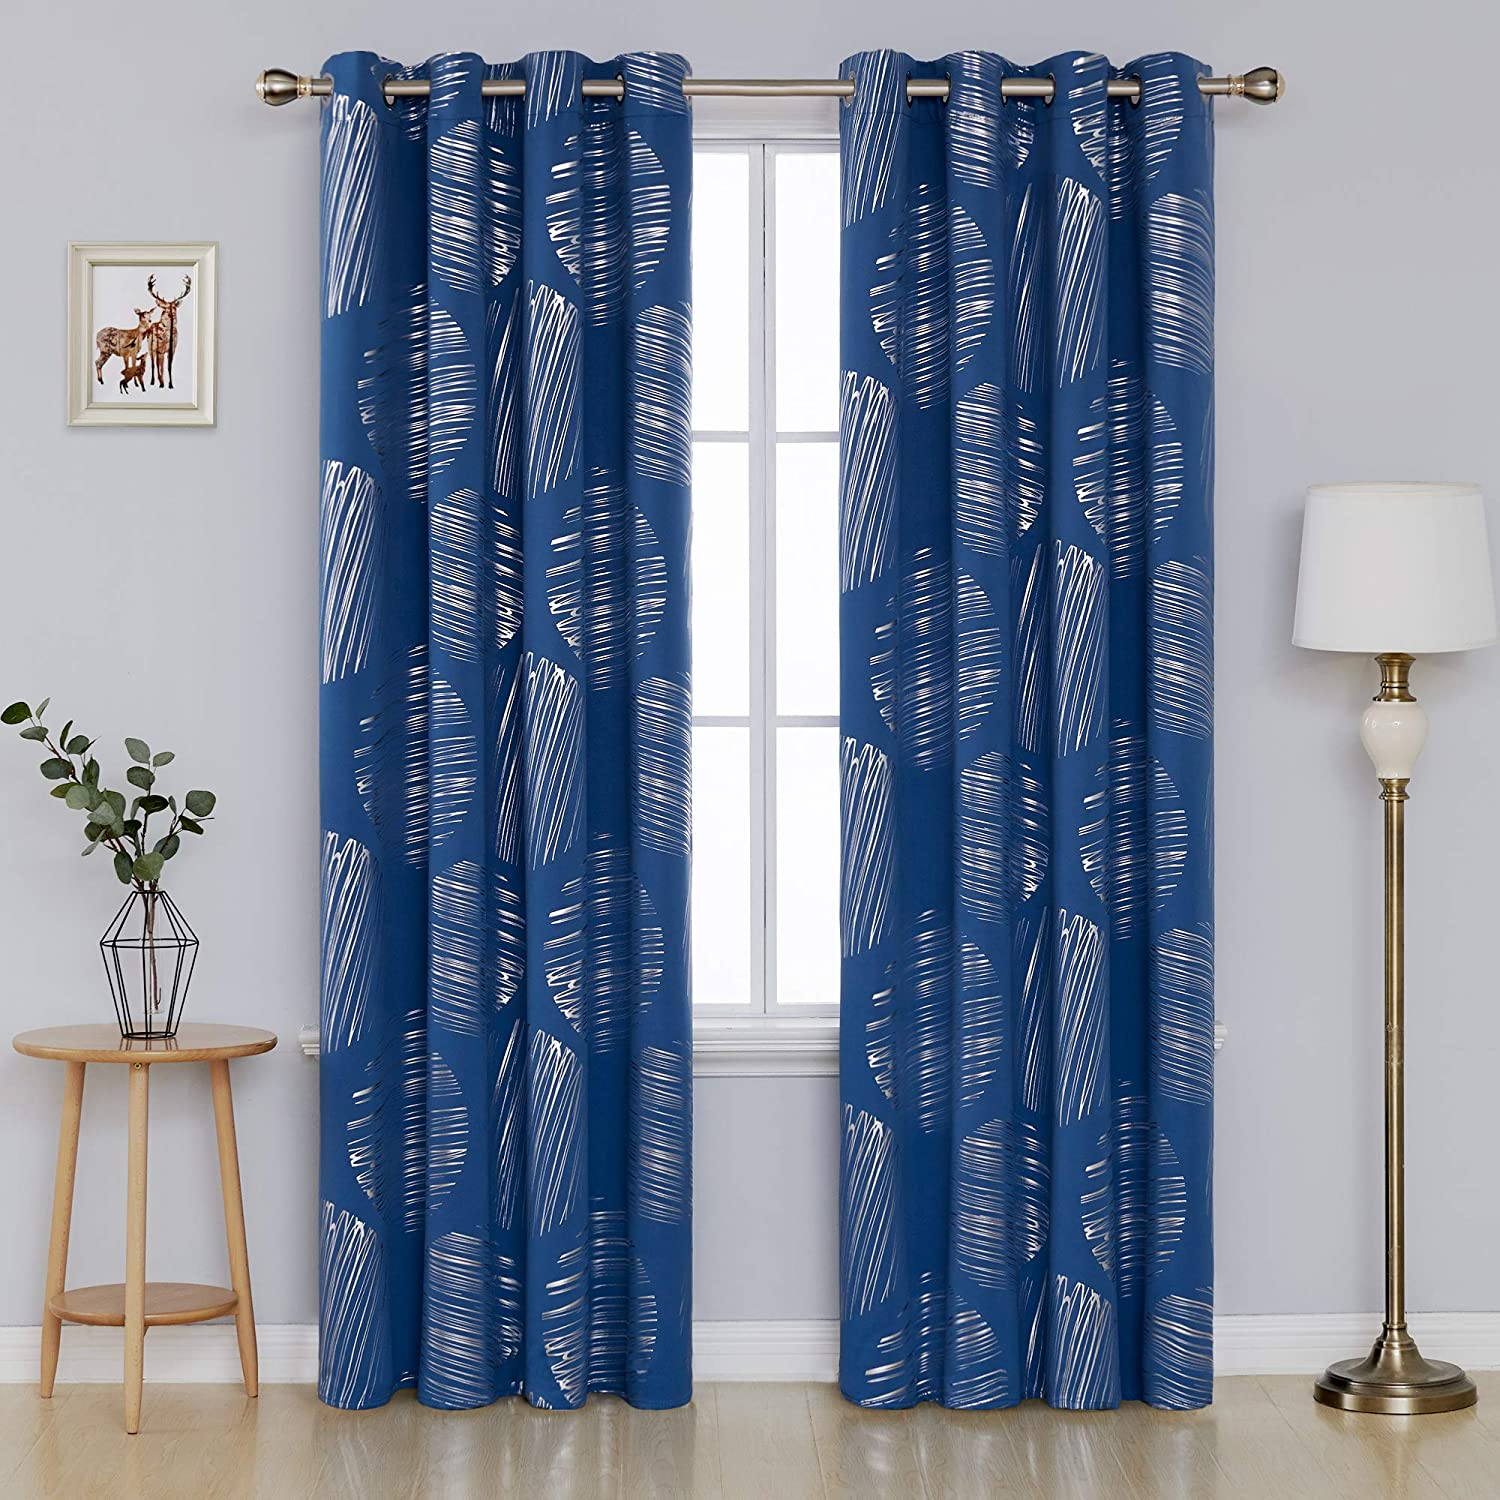 Deconovo Home Decor Foil Print Blackout Curtains with Grommets Thermal Insulated Drapes for Sliding Glass Doors 52 x 84 Inch Dark Blue 2 Panels